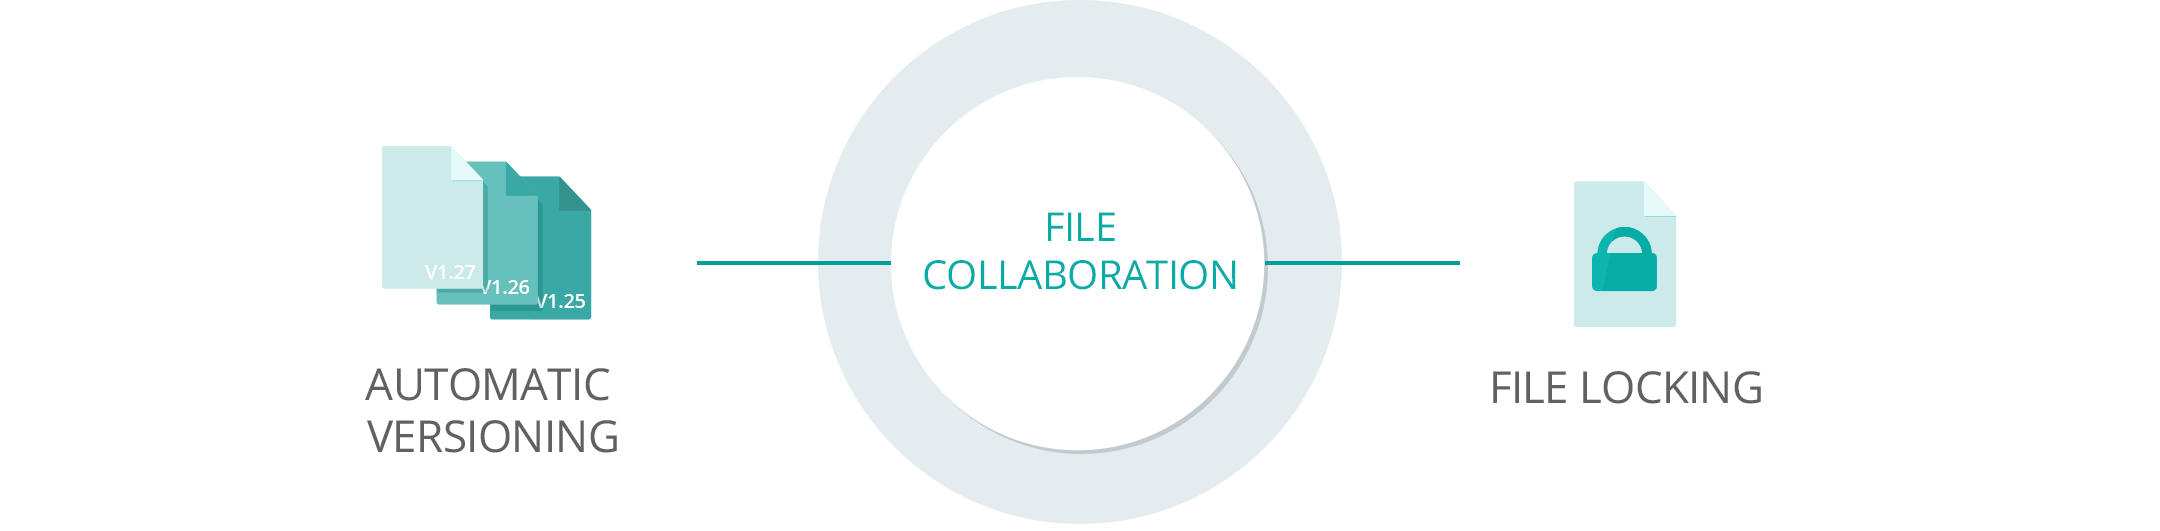 Collaborate with Colleagues Partners and Clients